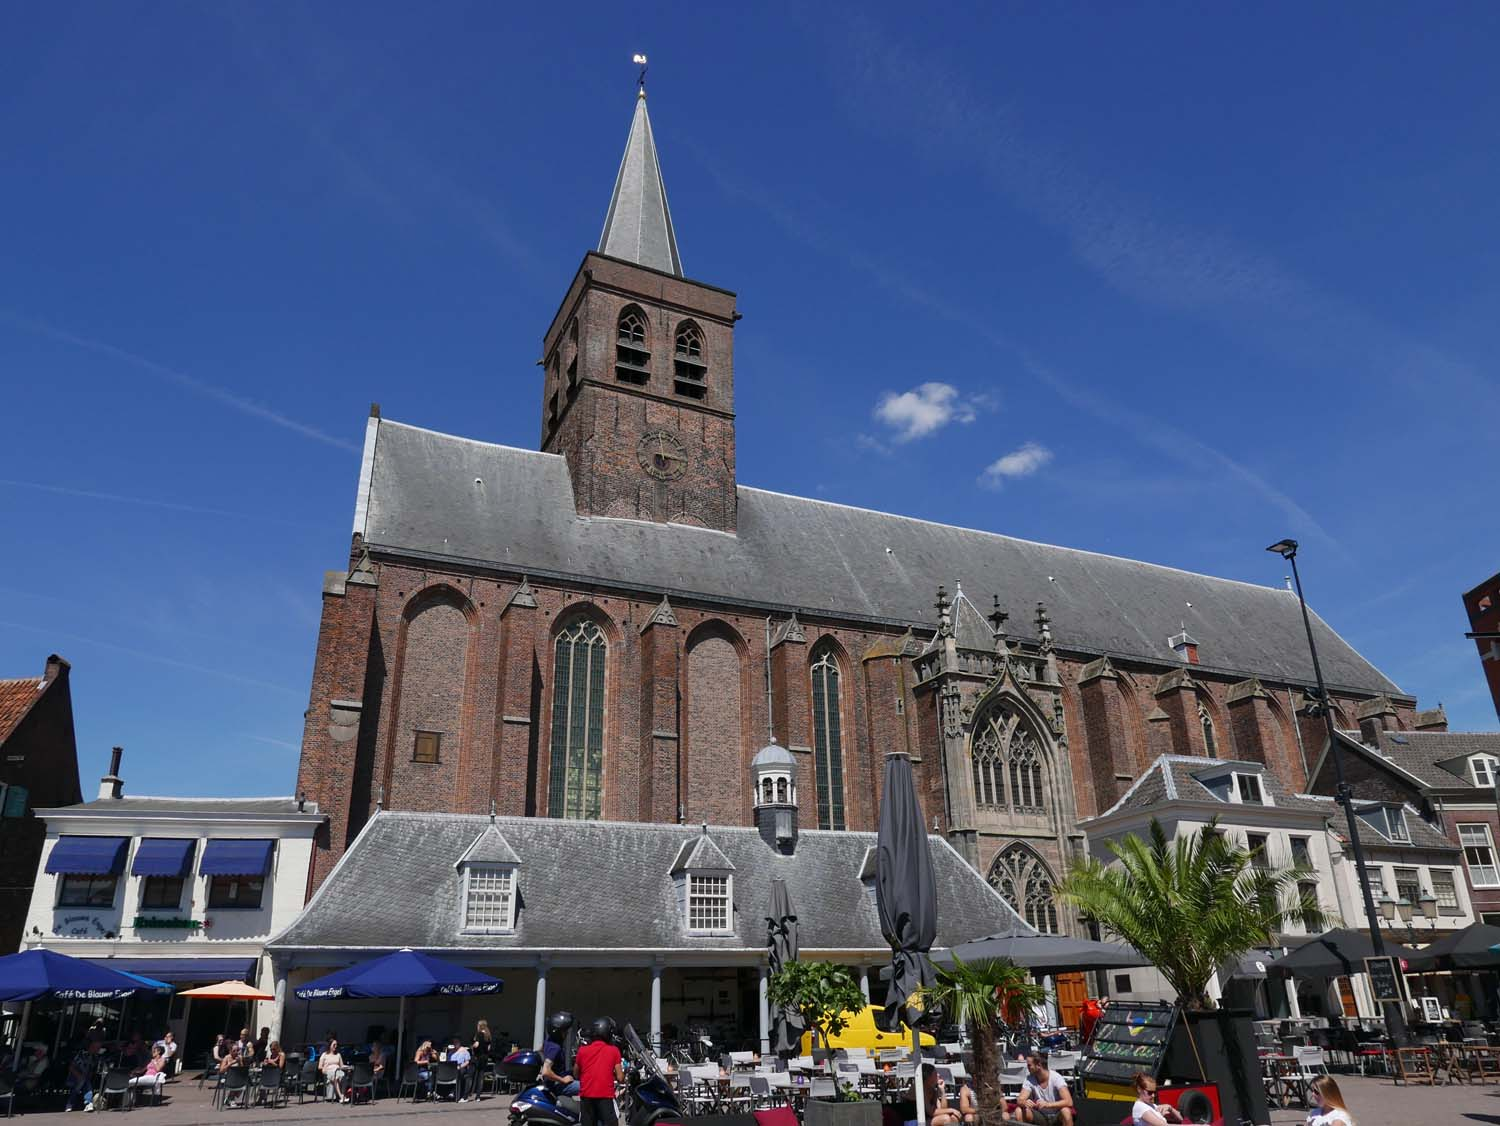 Sint Joriskerk (St. George's Church)